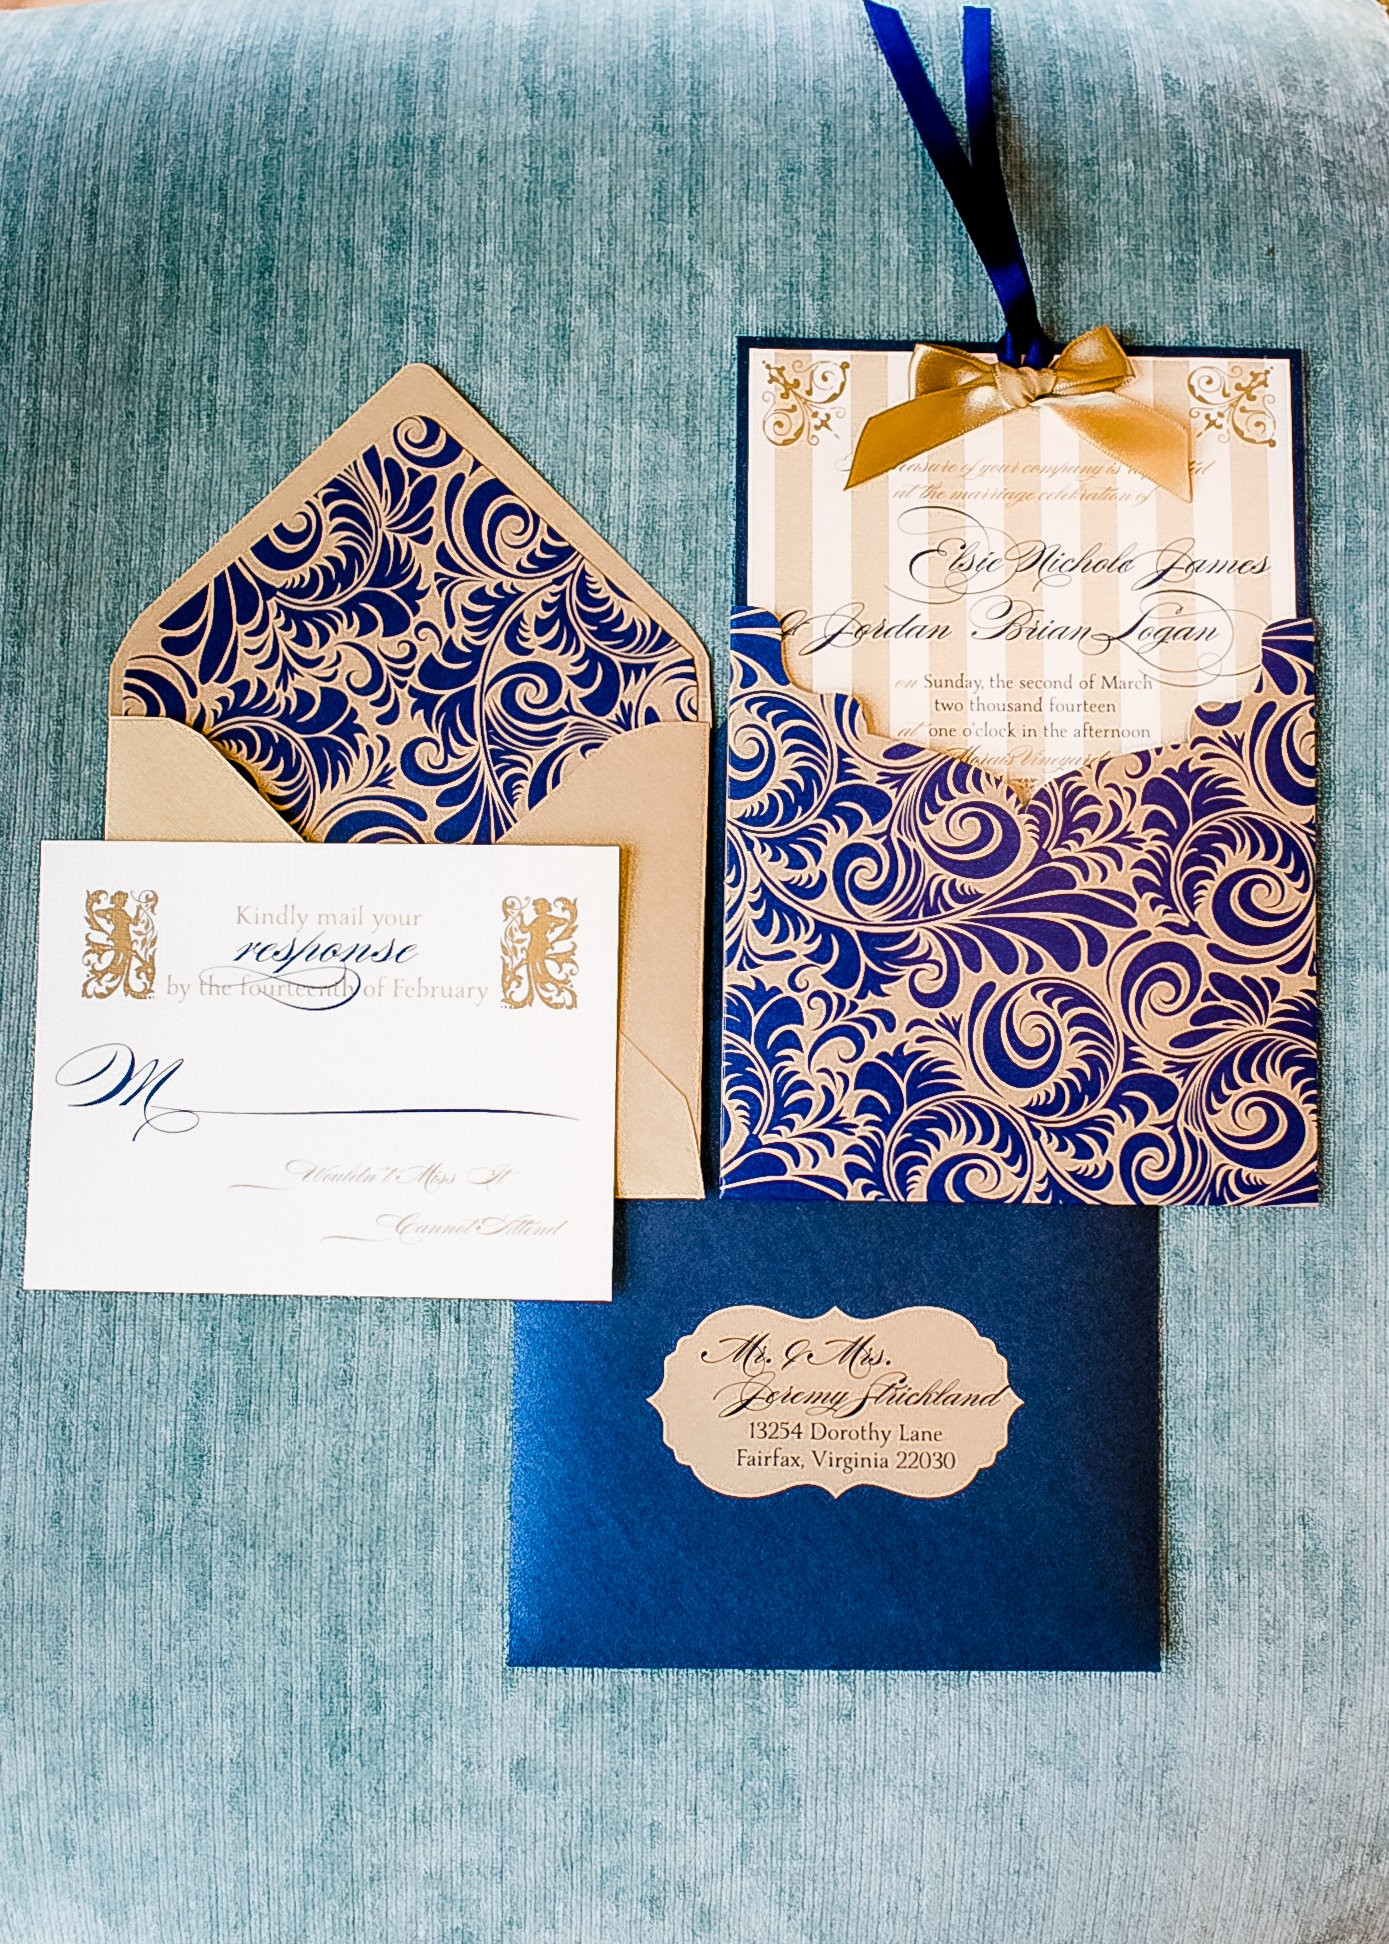 French Luxe invitation suite, navy blue, gold and ivory accents